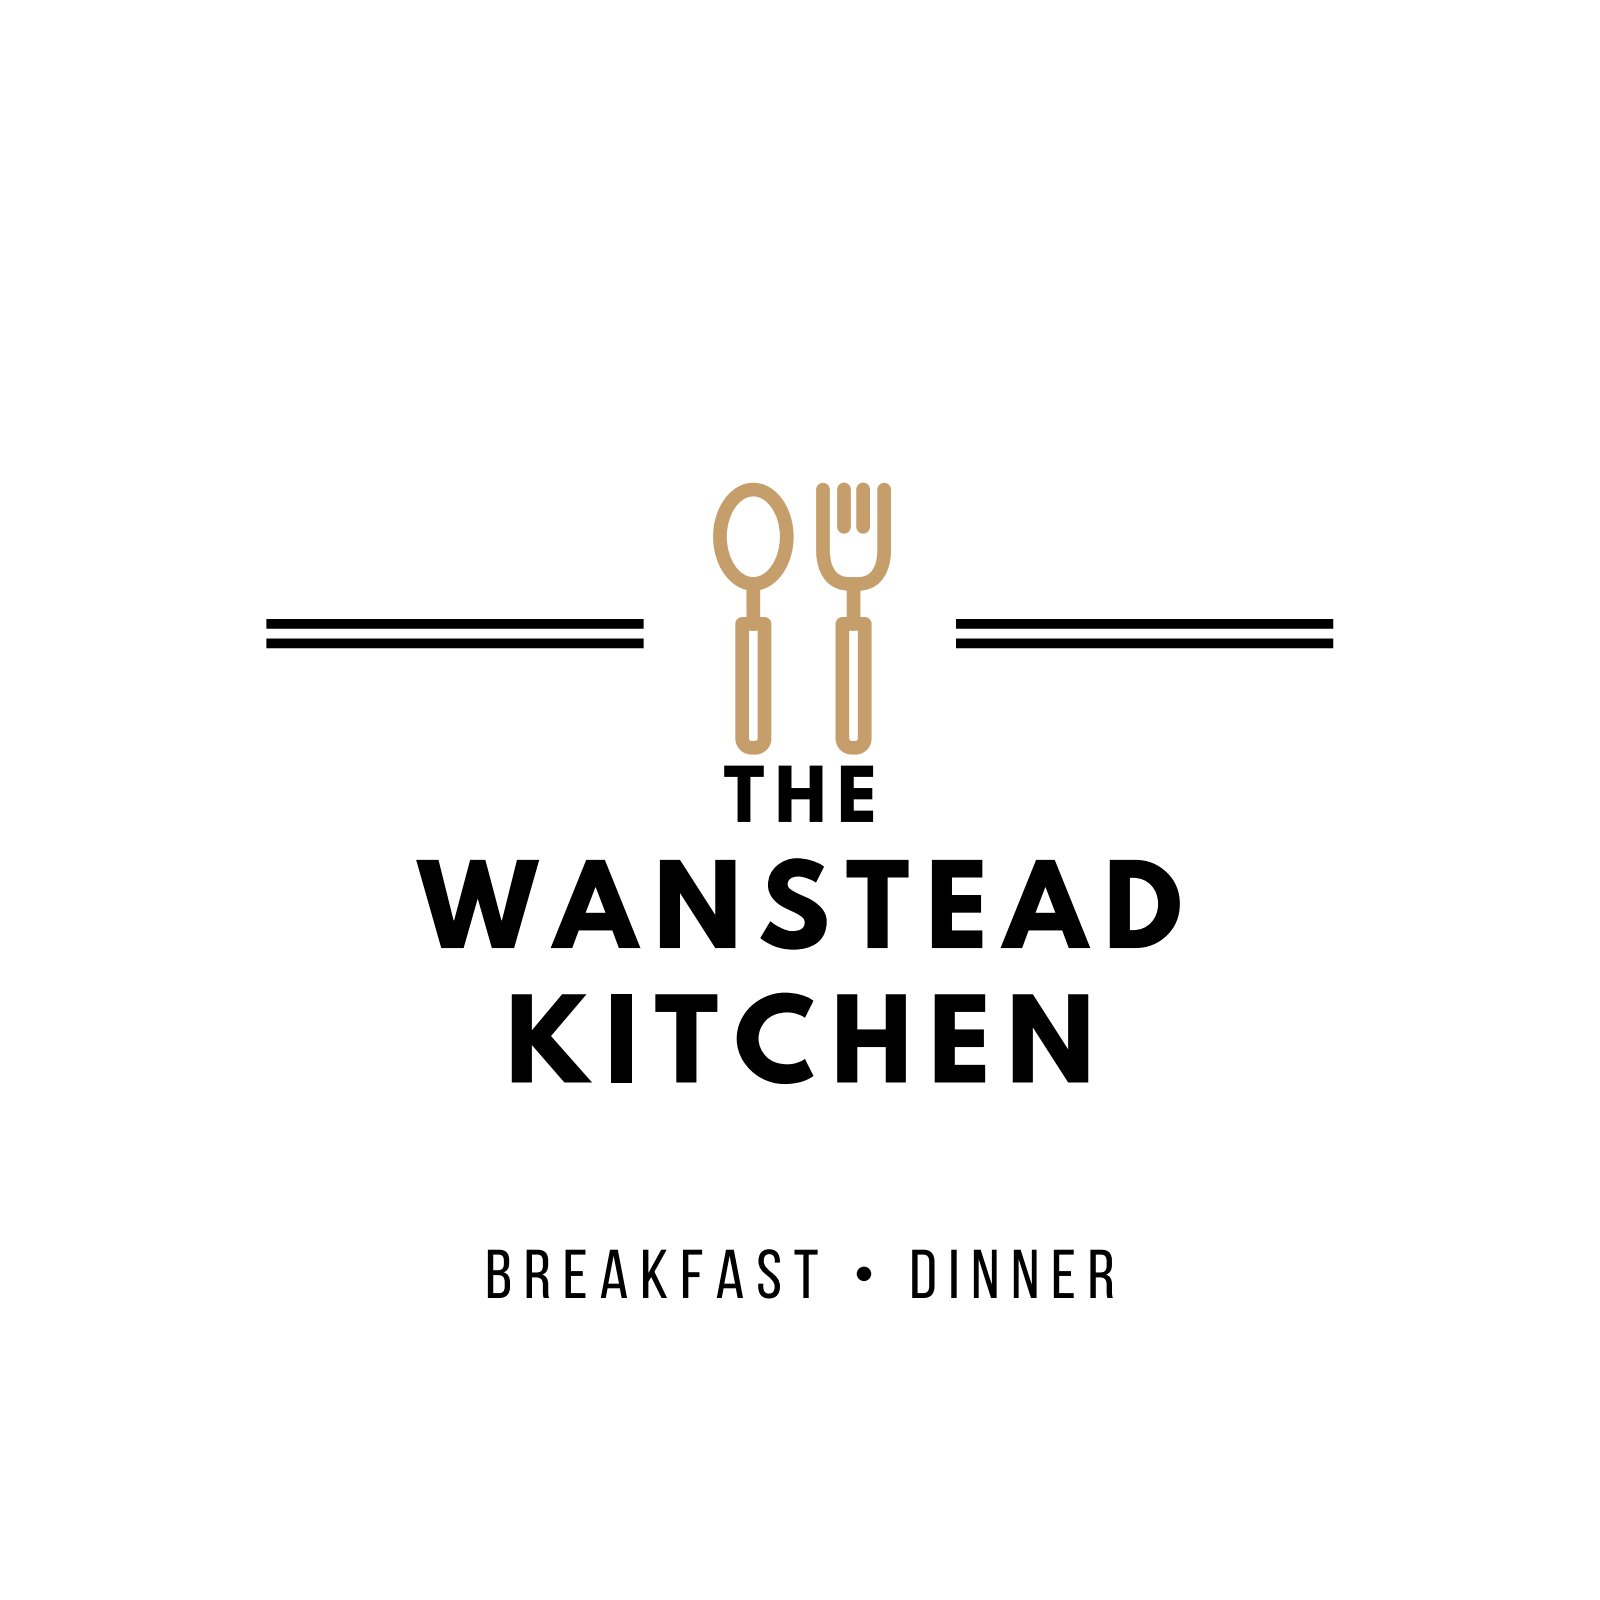 THE WANSTEAD KITCHEN LIMITED